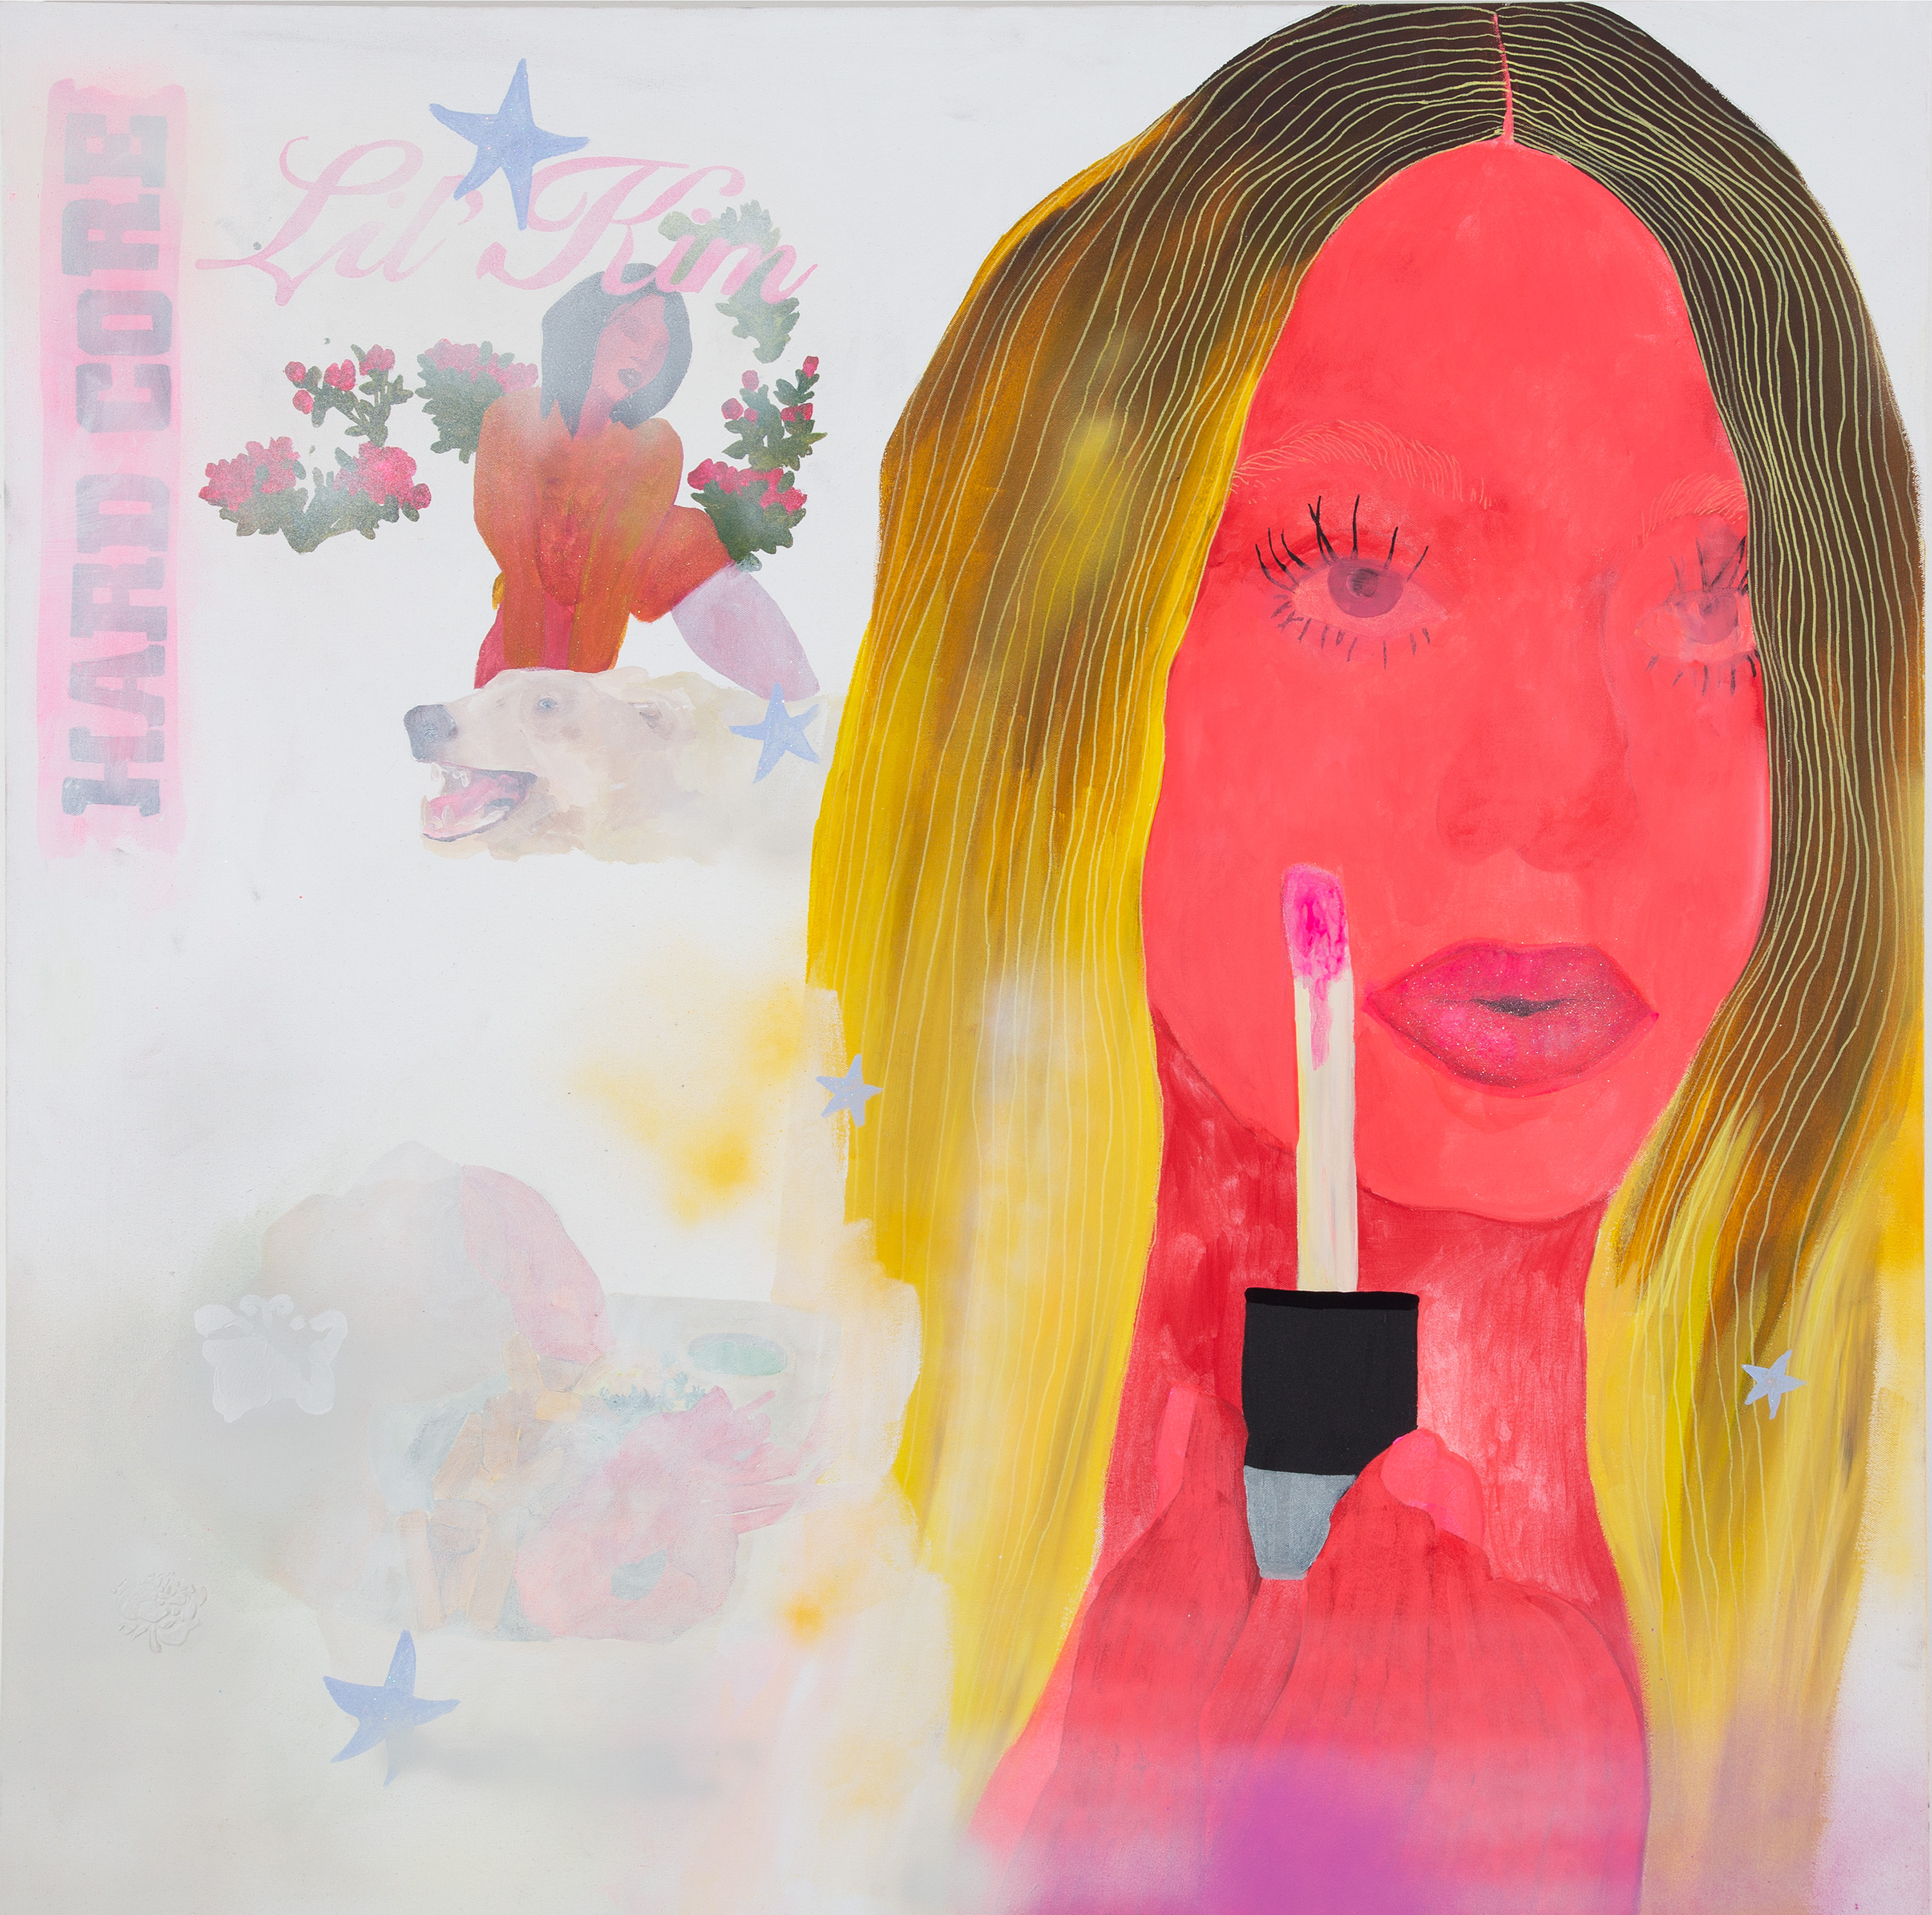 Square painting of blonde woman applying lip gloss, Lil Kim's Hard Core album cover (1996).